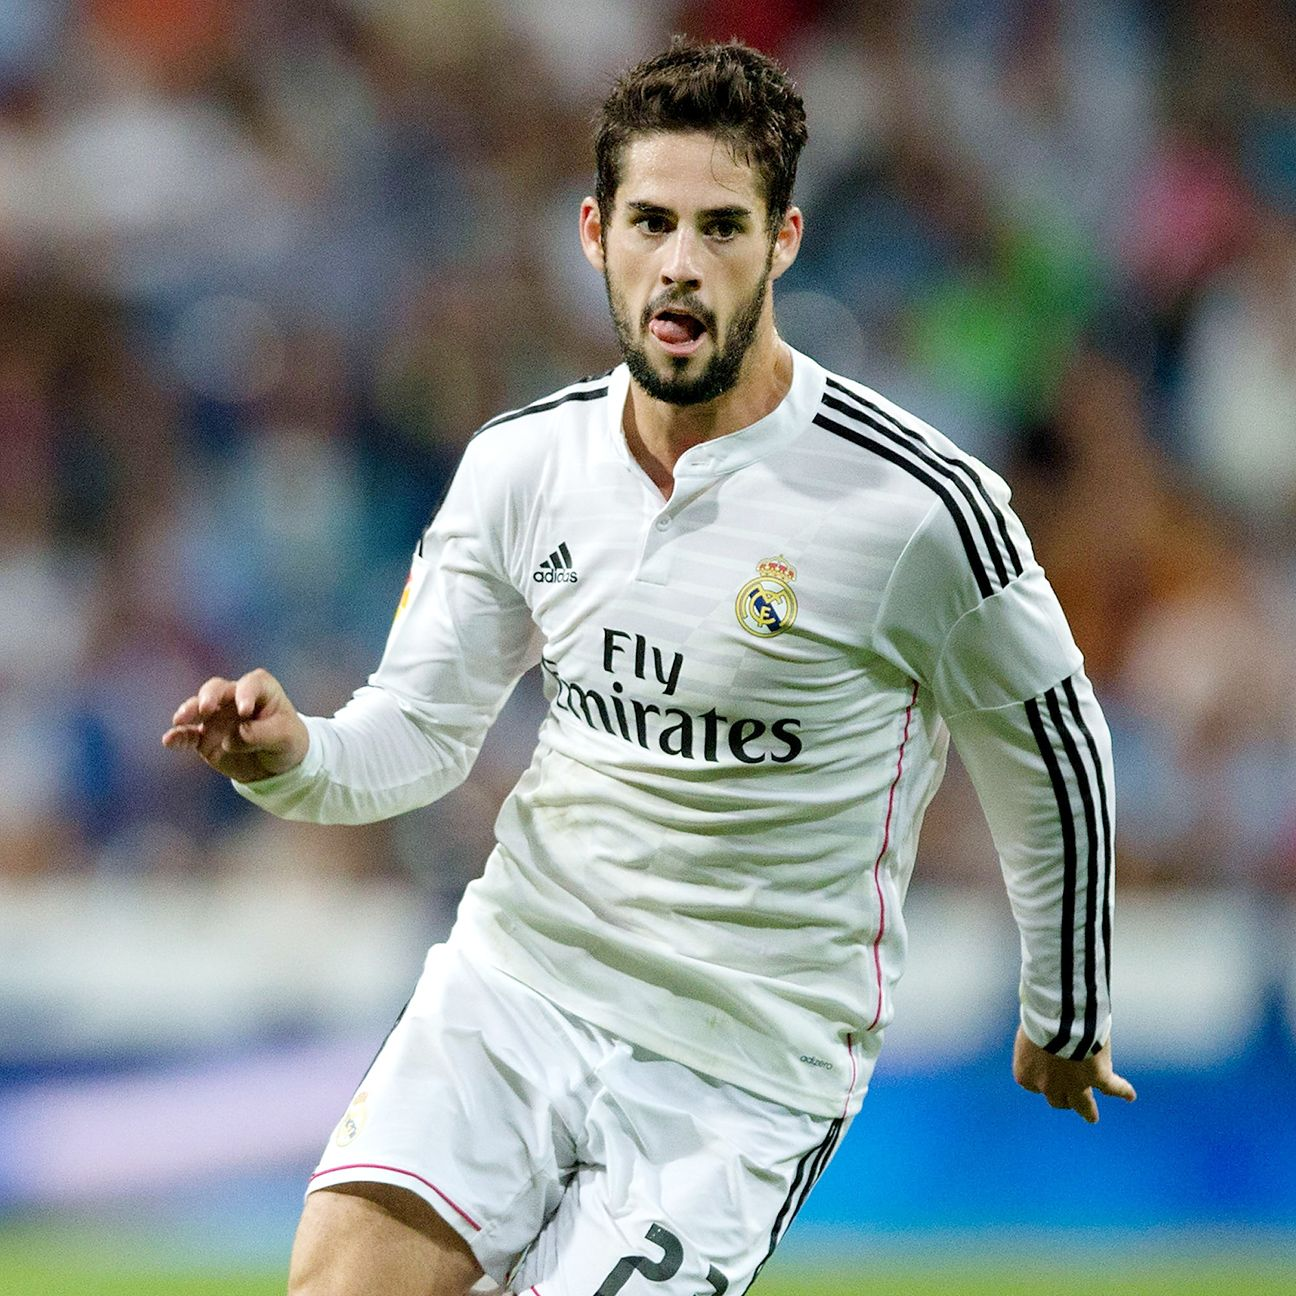 Isco will be key to helping Real Madrid unlock the Barcelona defence.